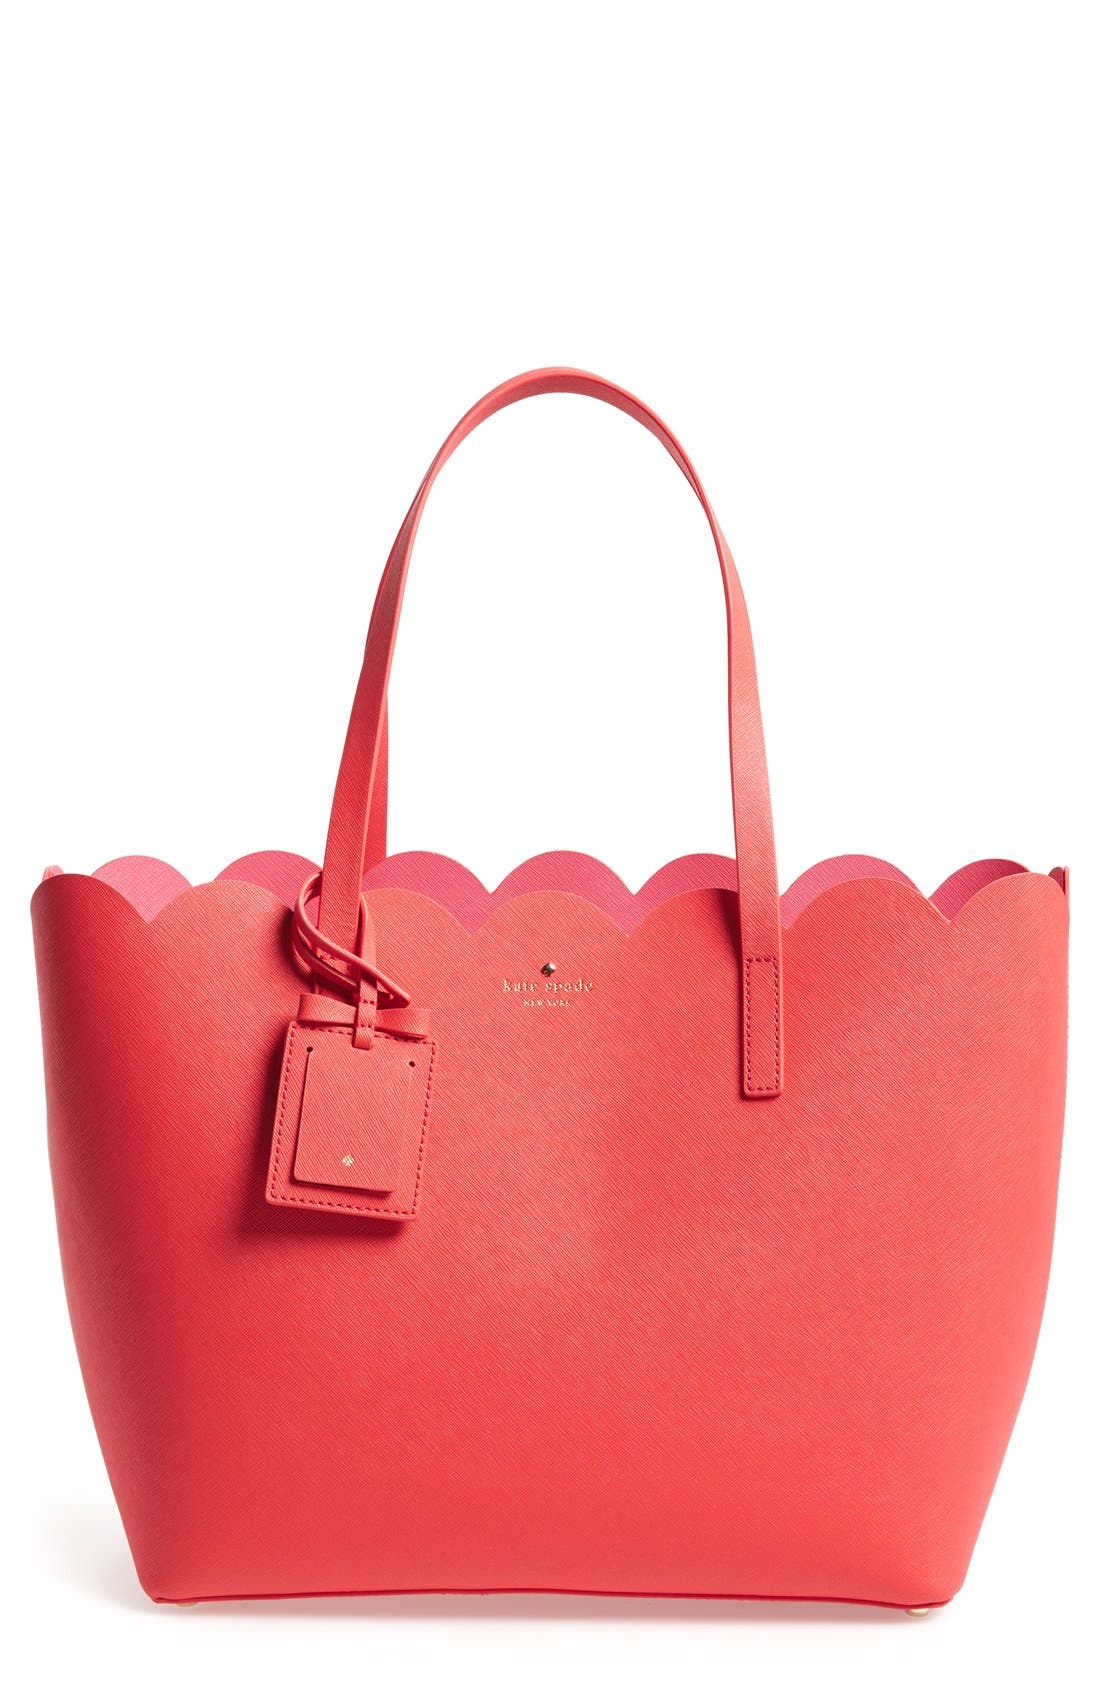 Alternate Image 1 Selected - kate spade new york 'lily avenue - carrigan' leather tote